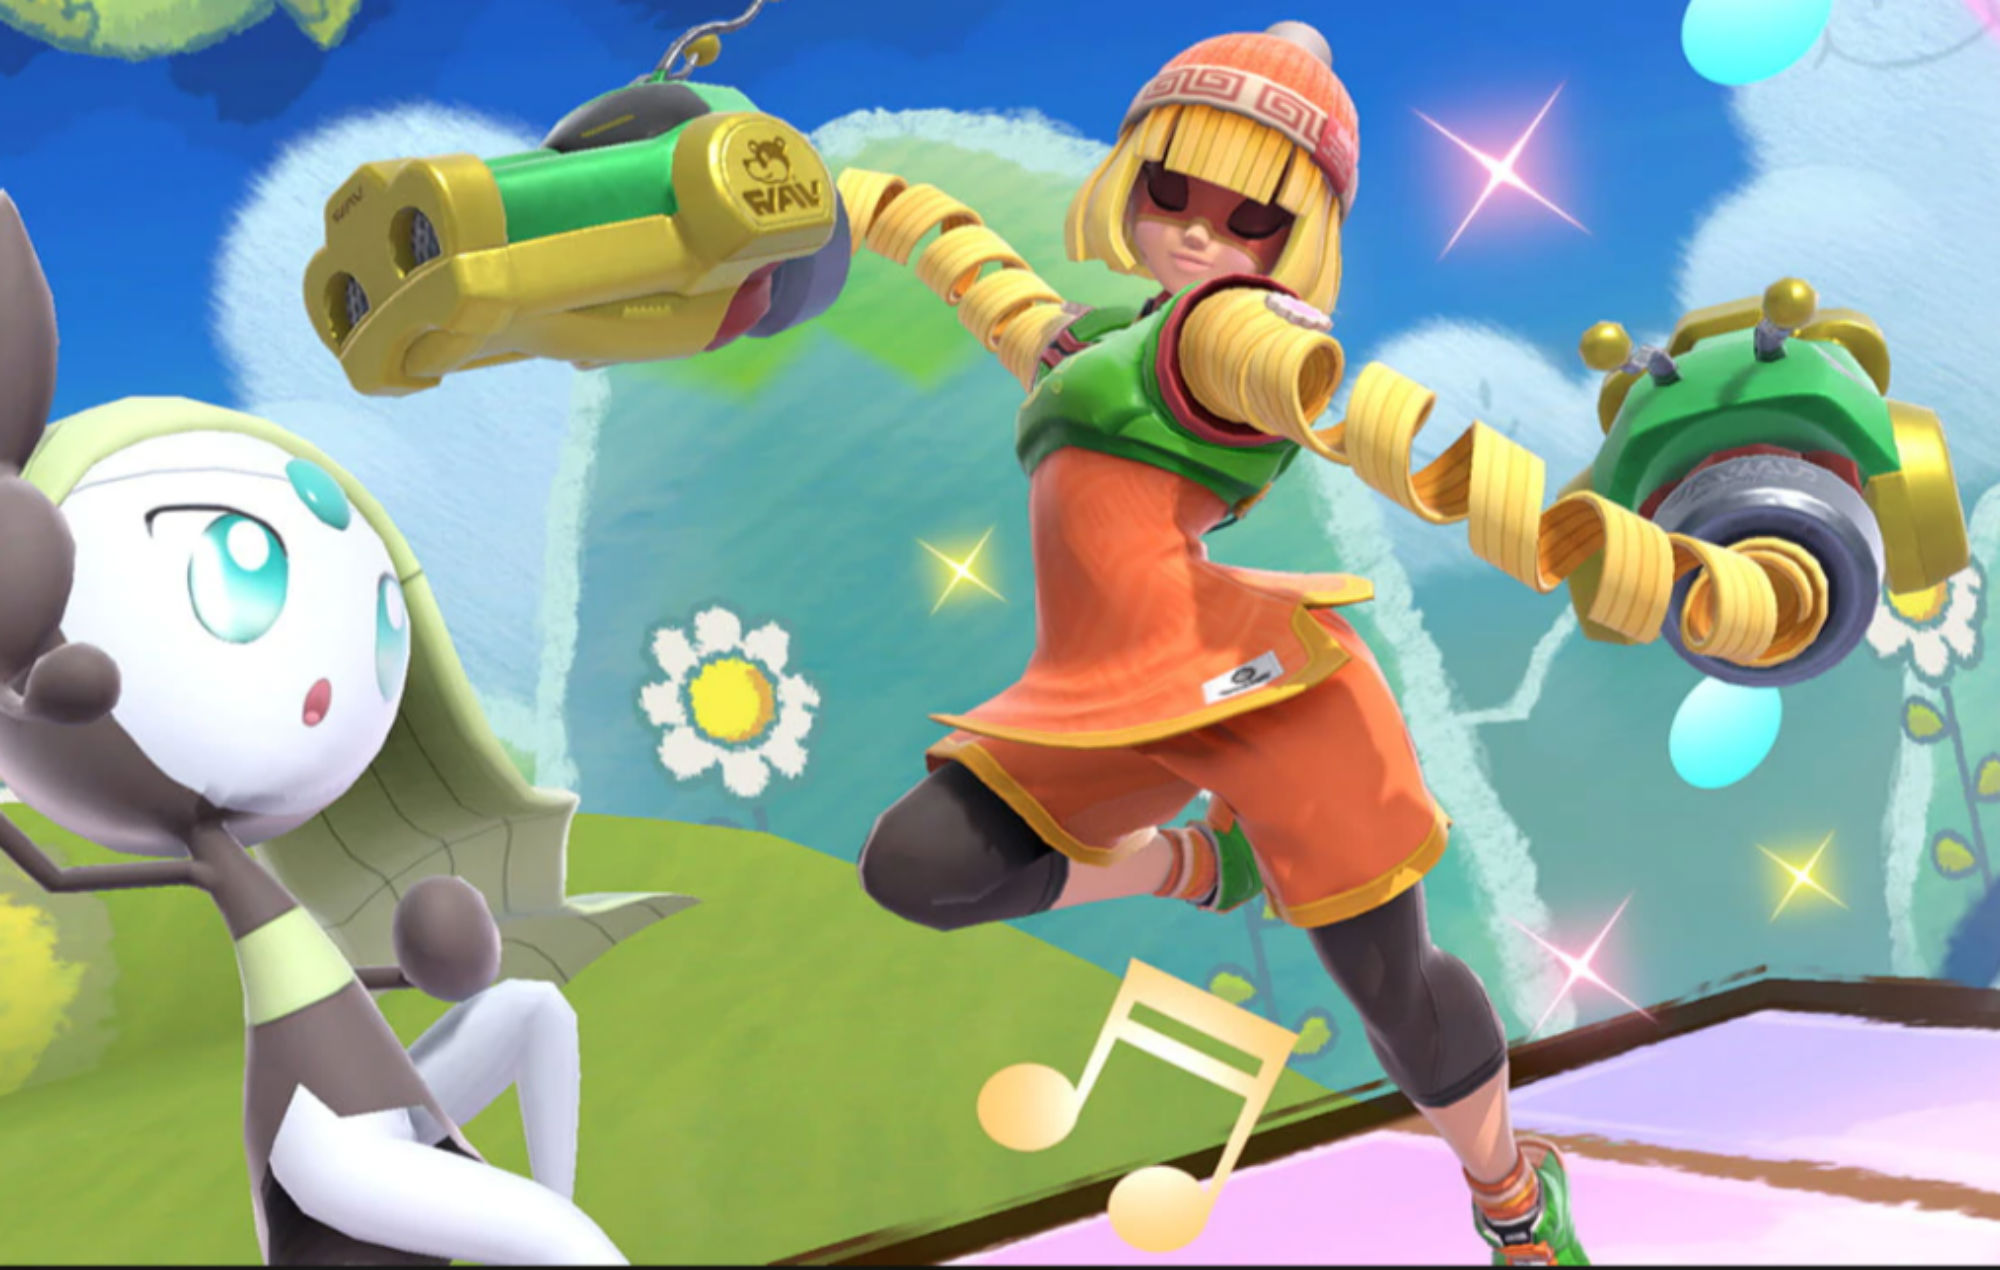 The 'Super Smash Bros.' fighter from 'ARMS' has finally been revealed